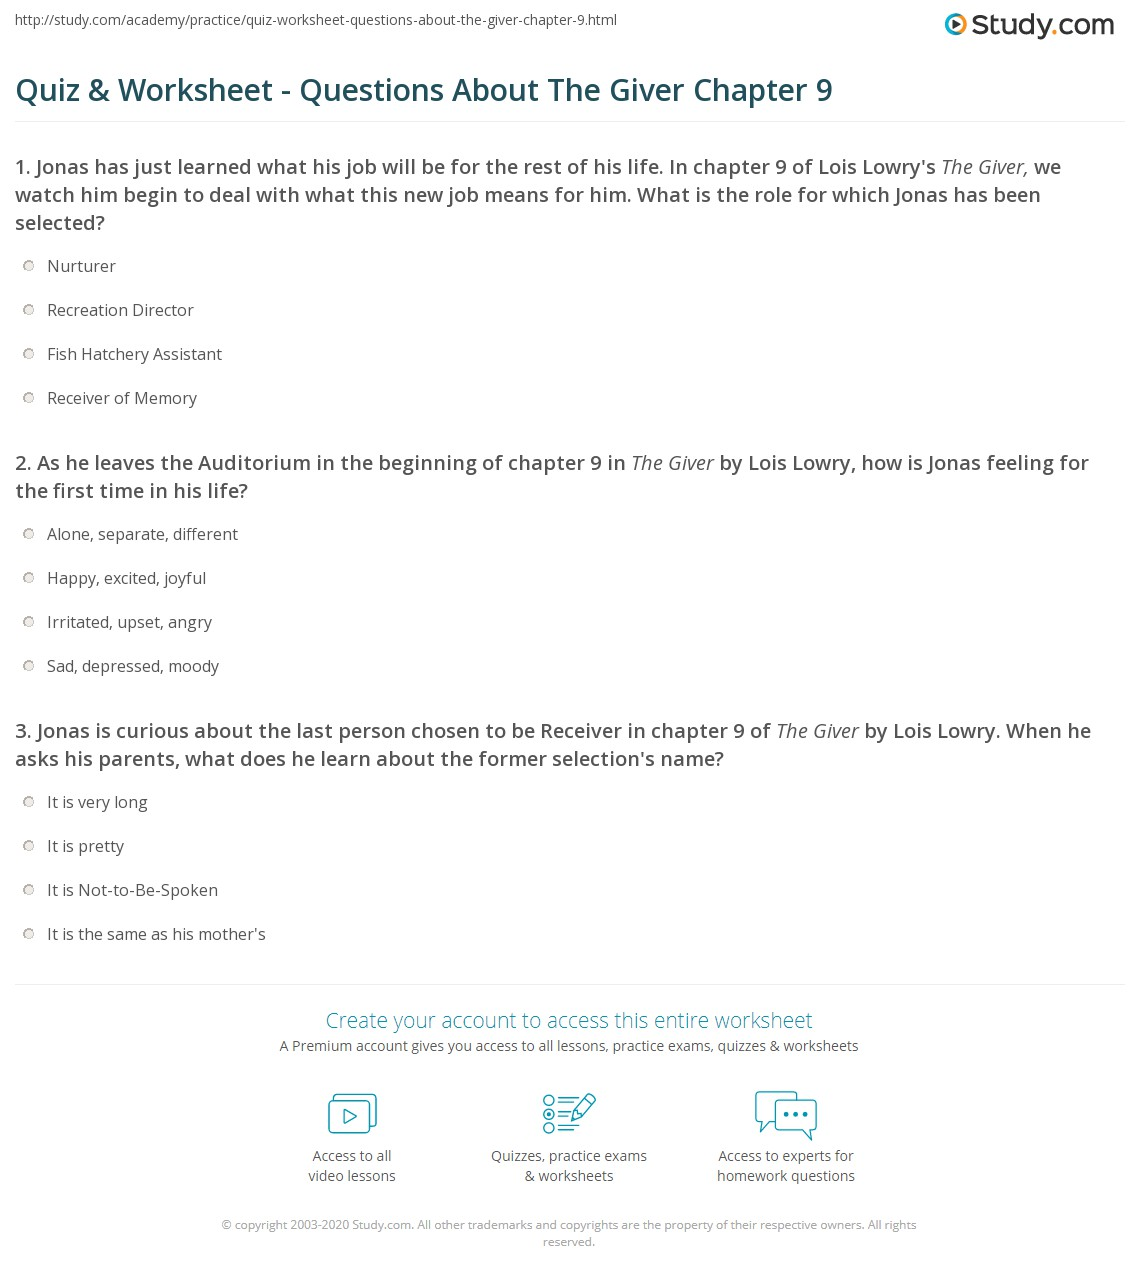 quiz worksheet questions about the giver chapter 9 com print the giver chapter 9 summary quotes worksheet